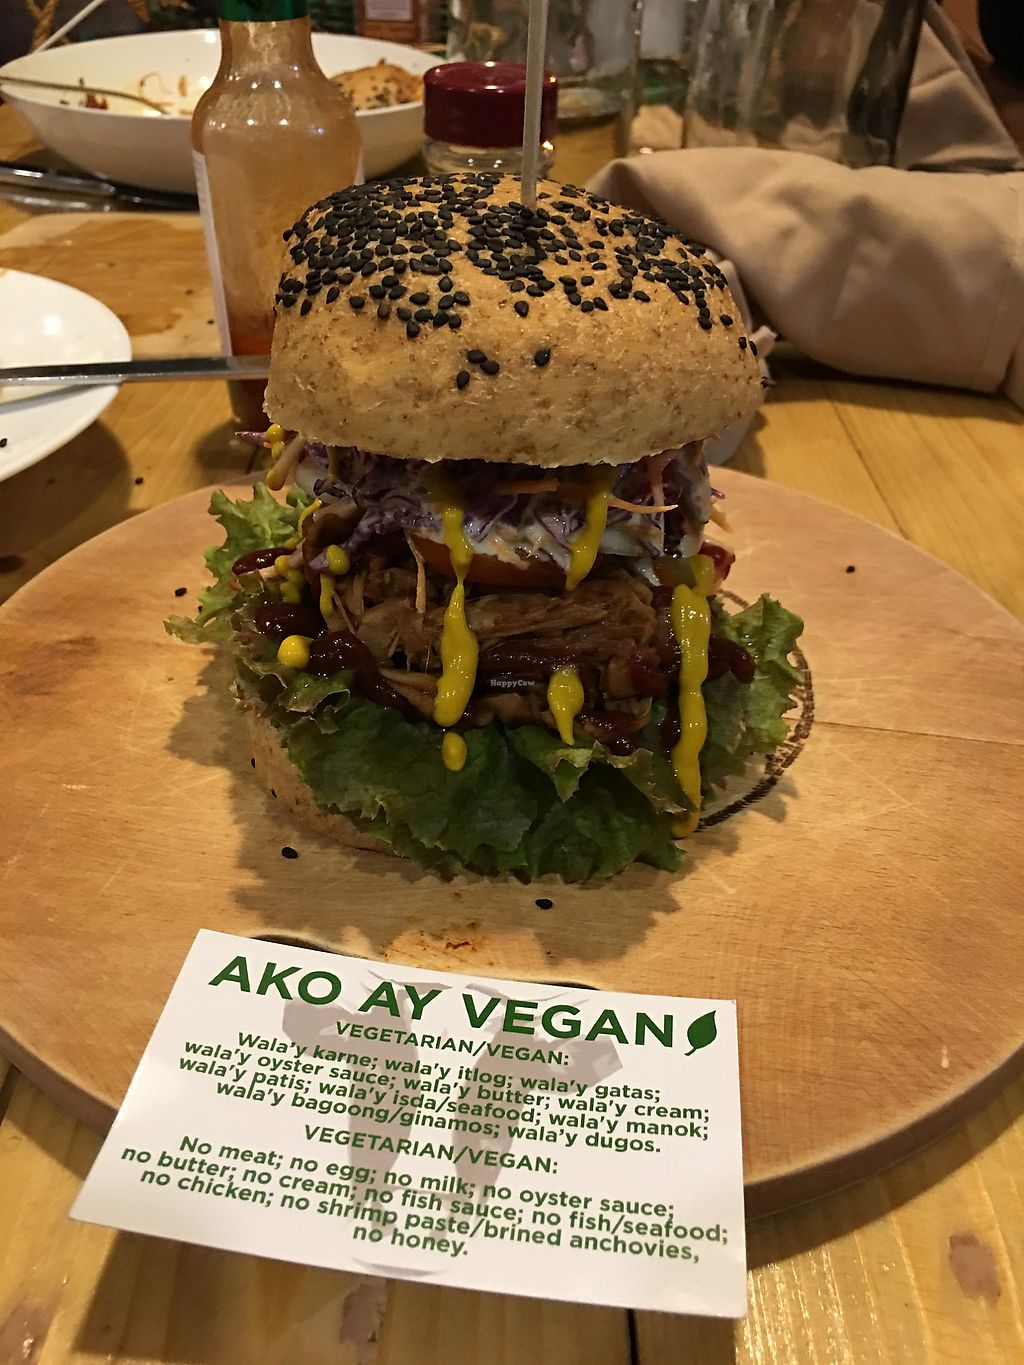 """Photo of The Vegan Dinosaur  by <a href=""""/members/profile/Durianrider"""">Durianrider</a> <br/>Vegan burger <br/> October 11, 2017  - <a href='/contact/abuse/image/59921/314190'>Report</a>"""